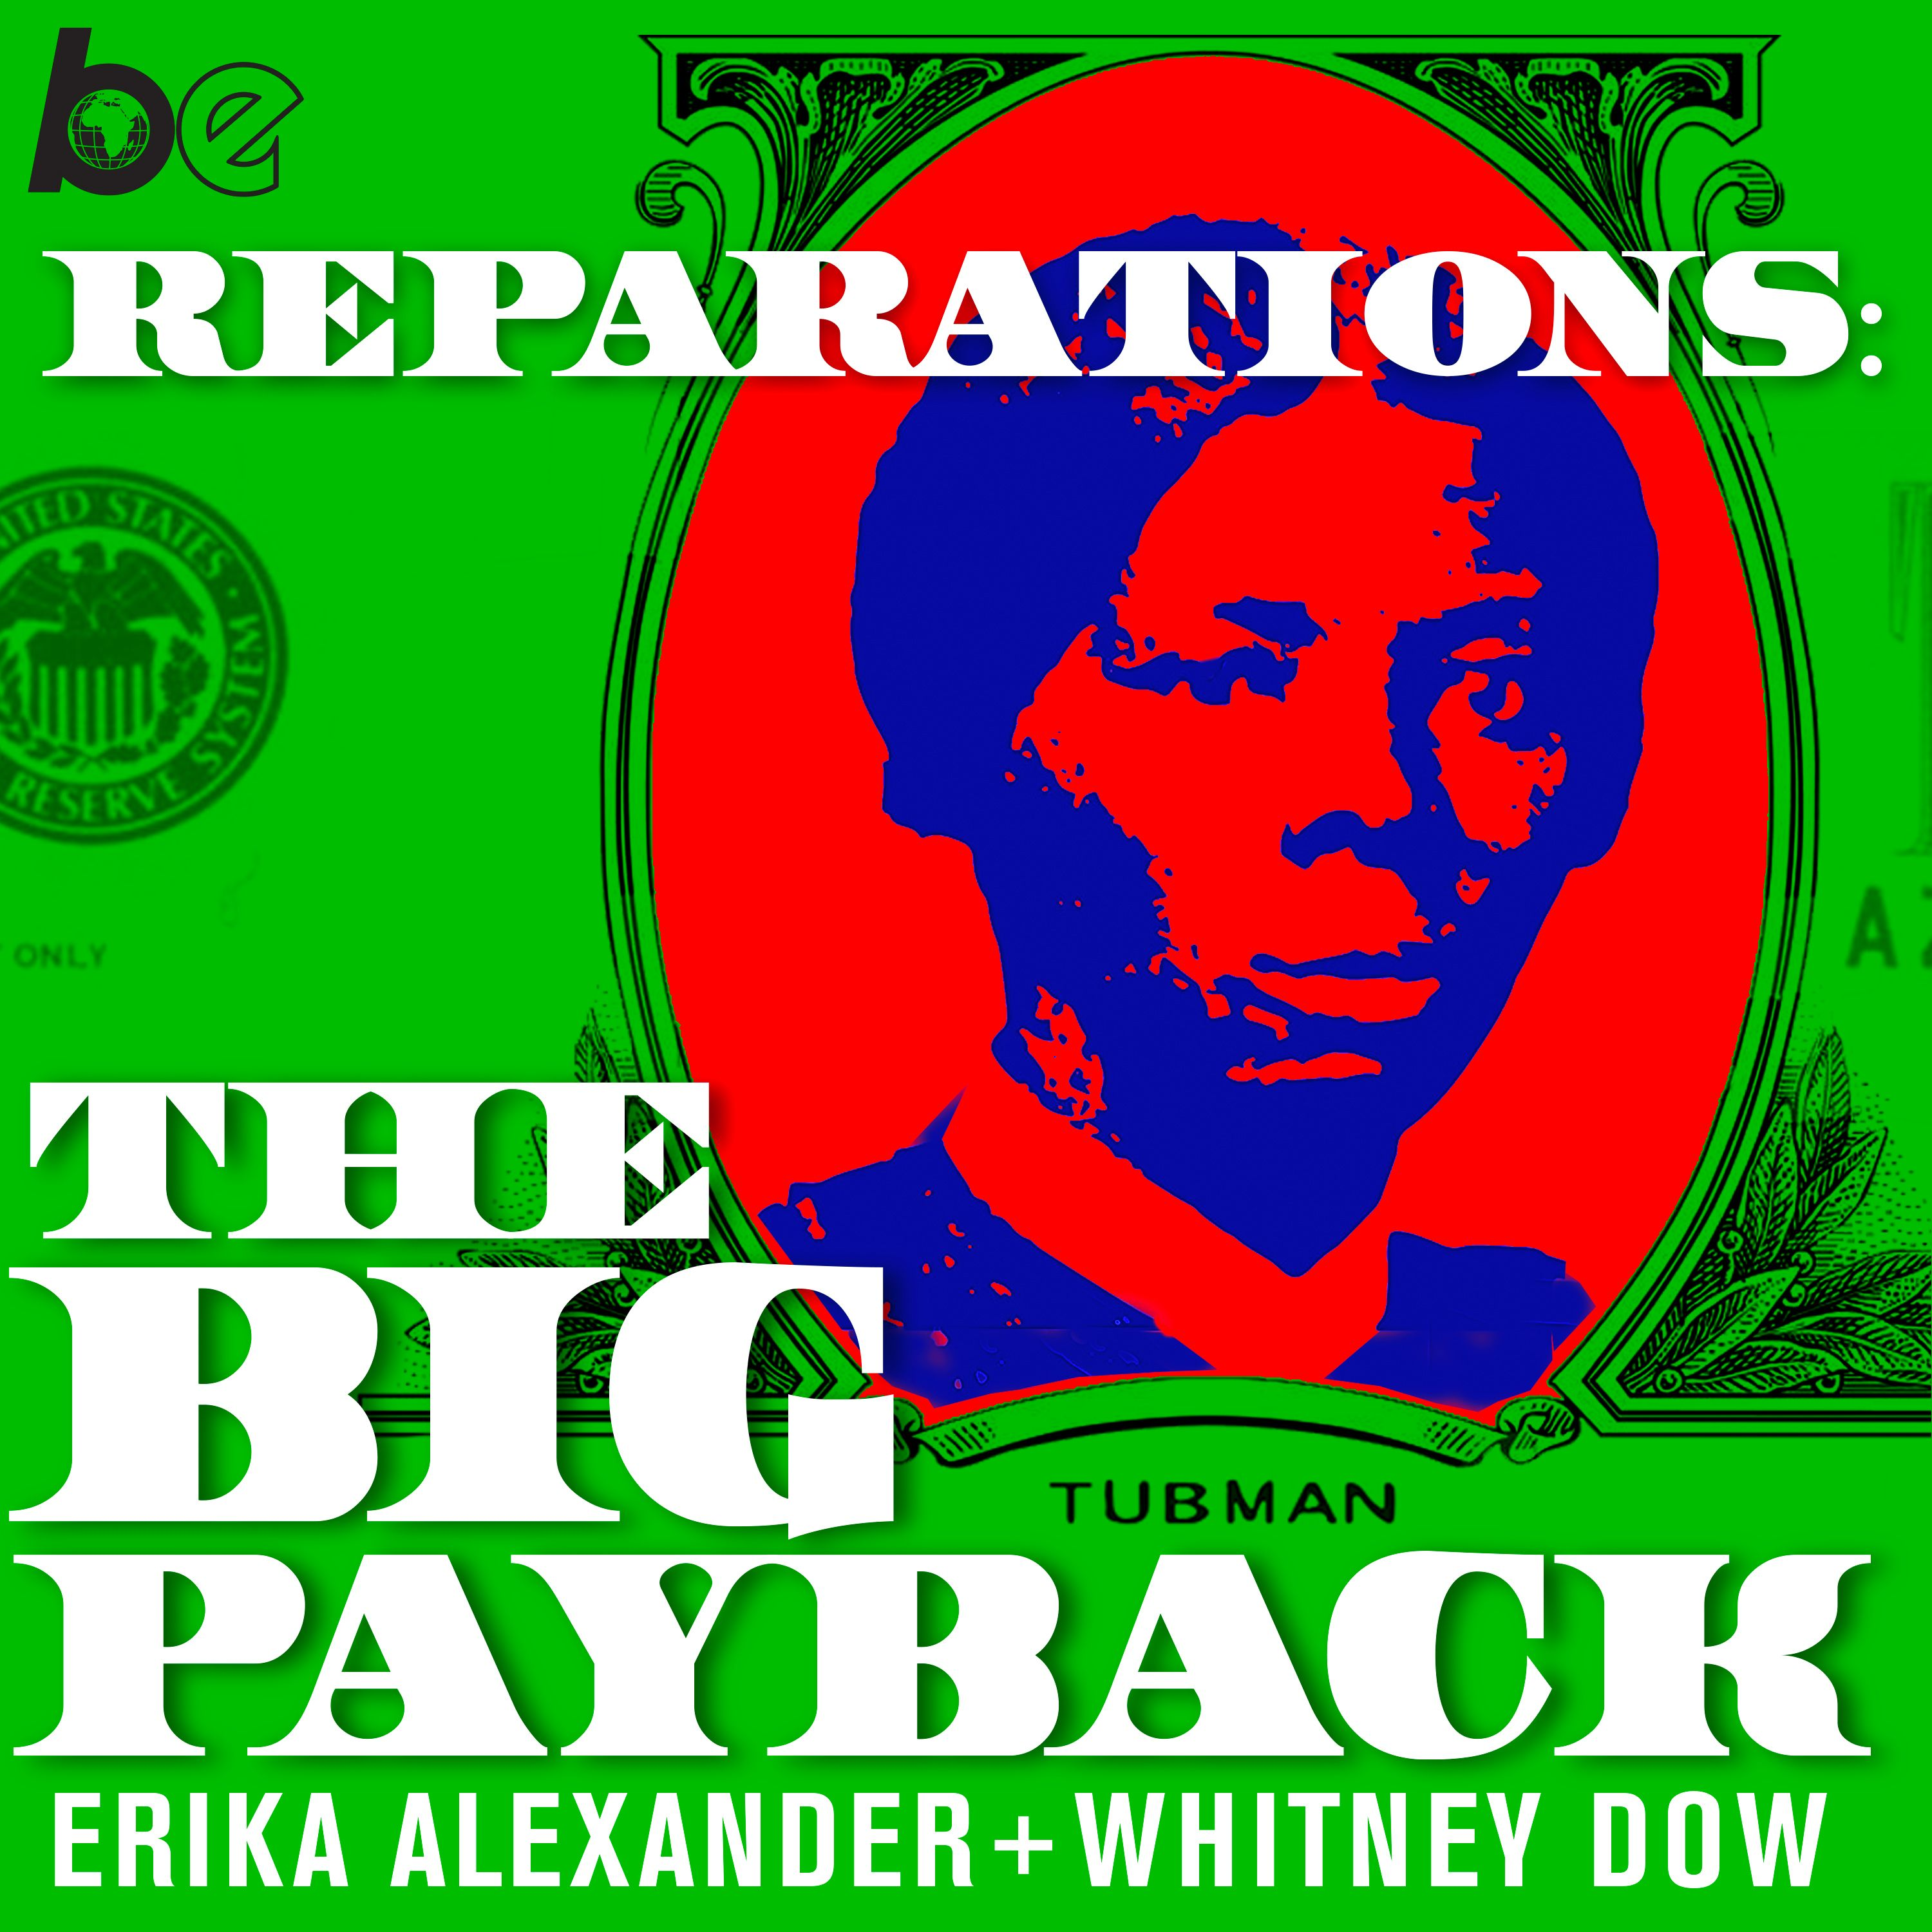 Introducing: Reparations: The Big Payback